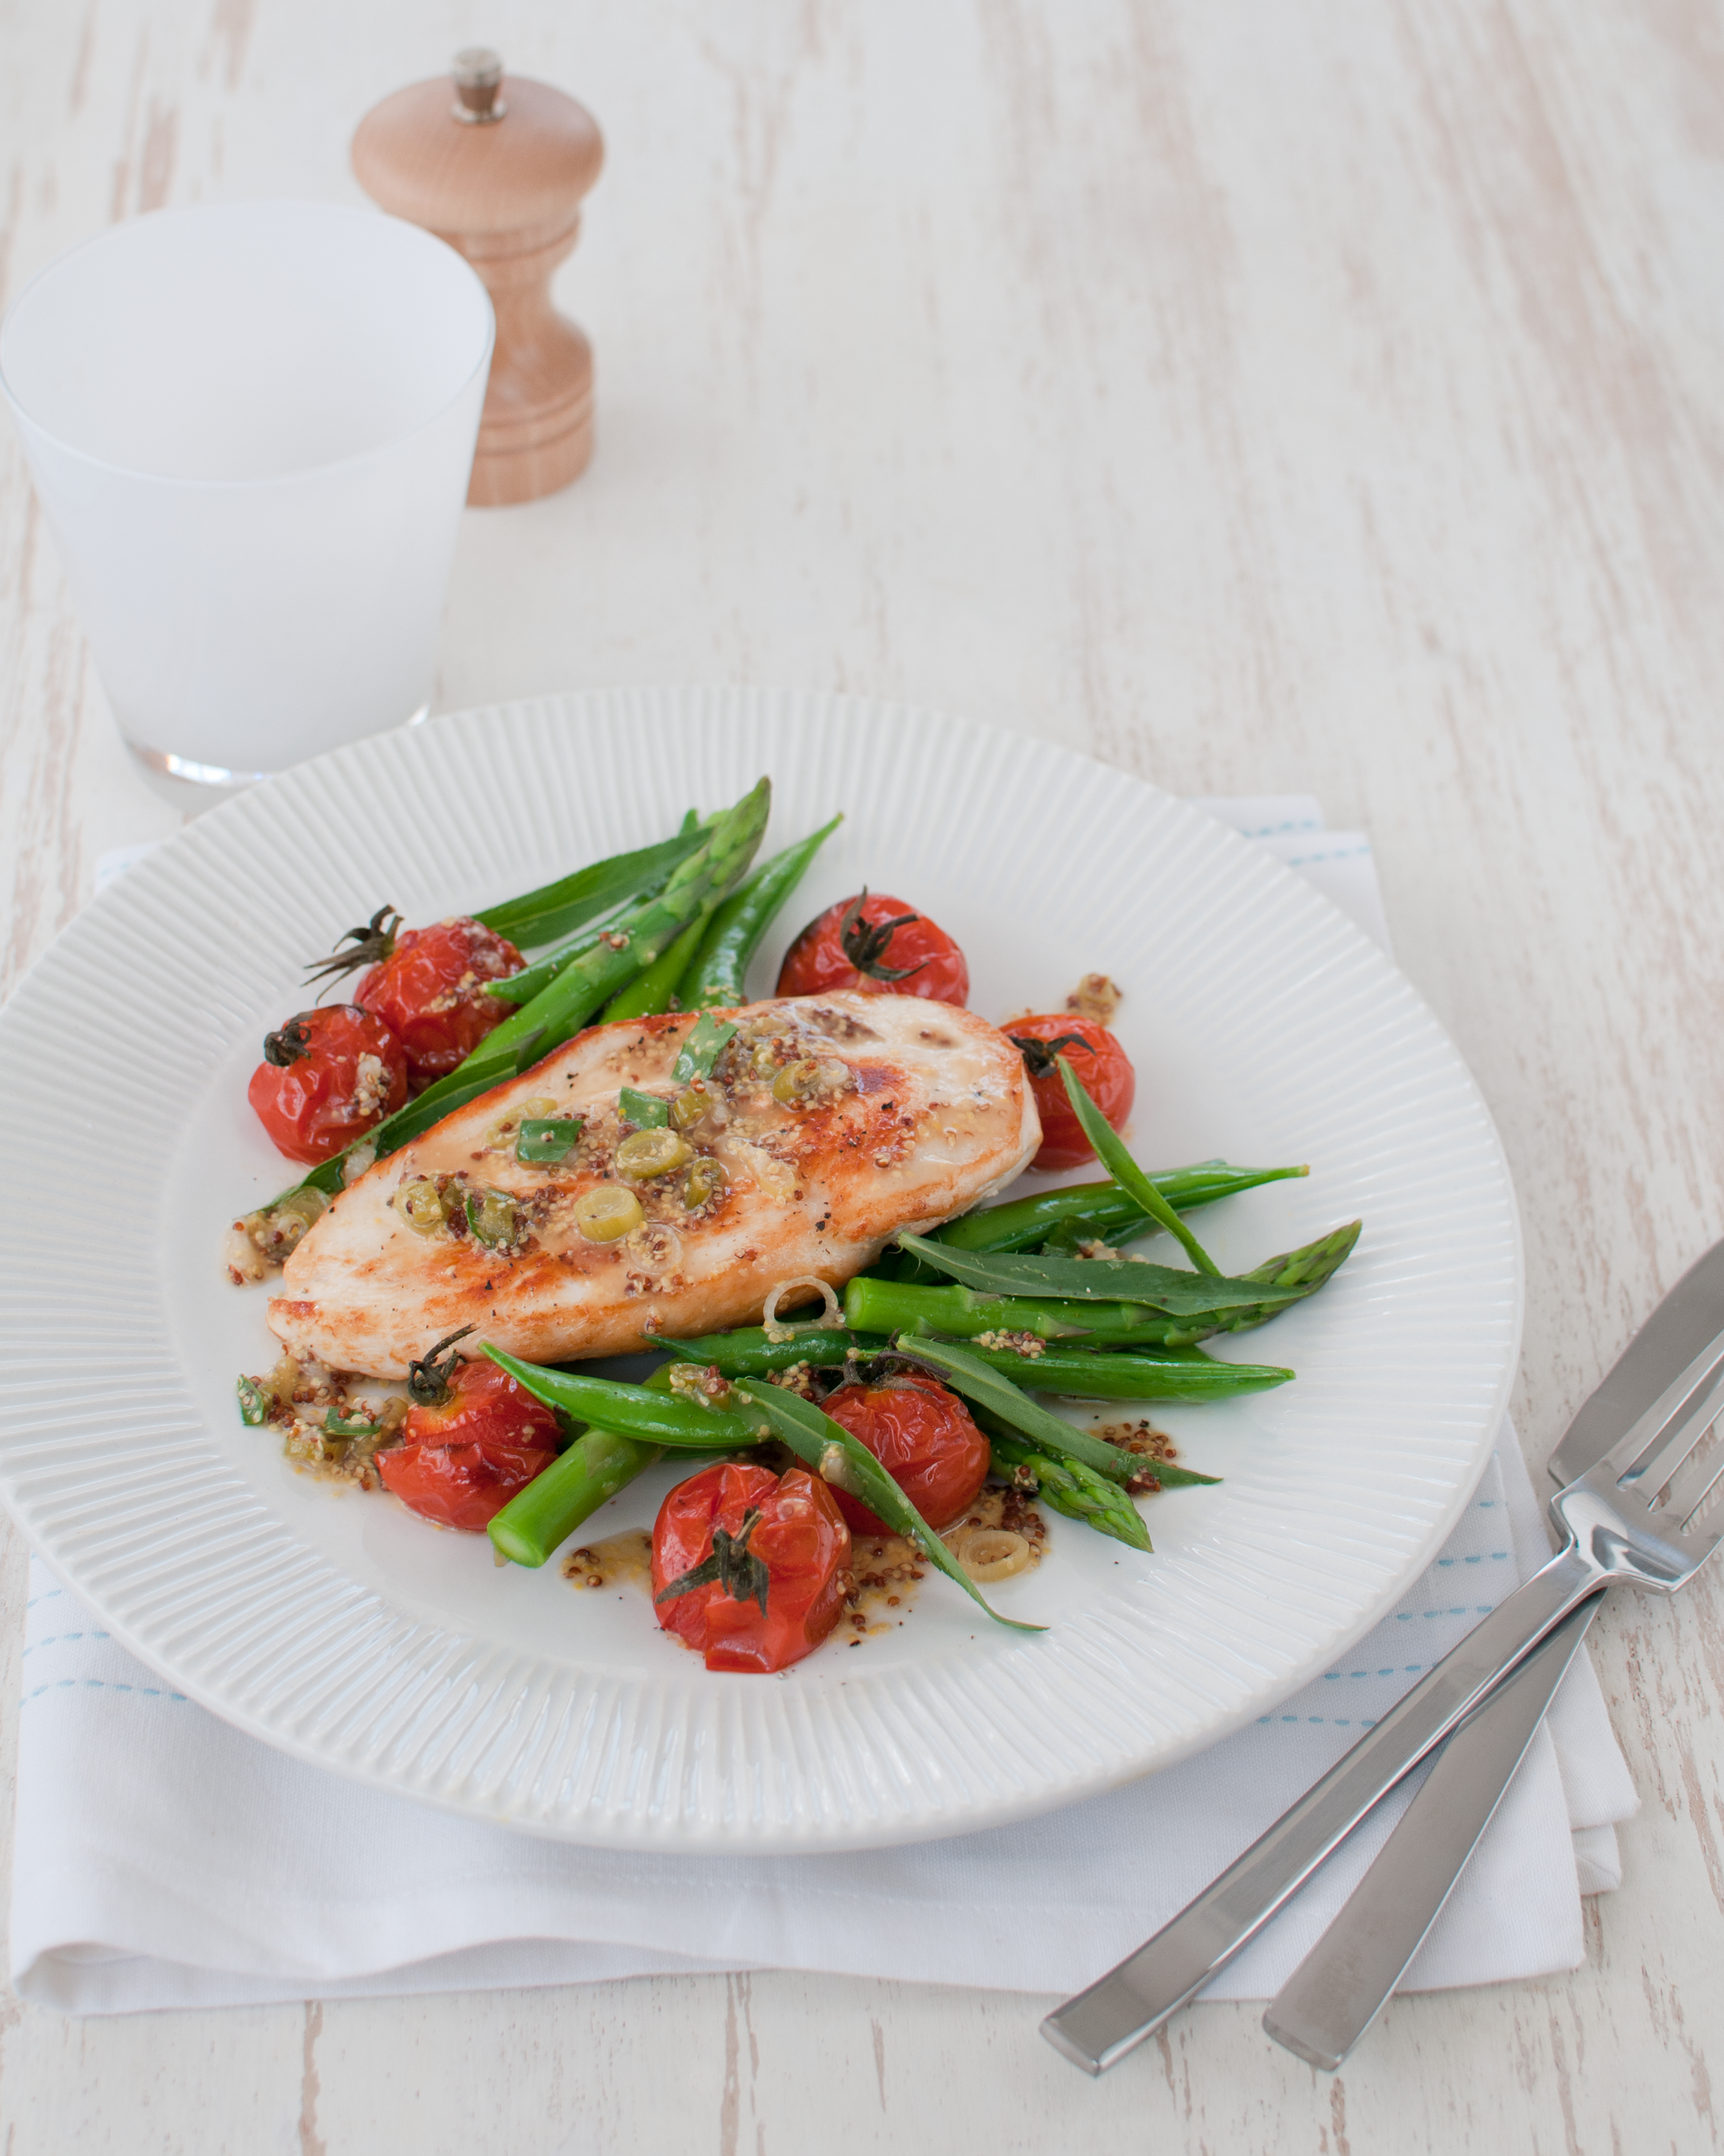 Michelle Bridges: Chicken with Mustard Sauce, Roast Tomatoes, and Asparagus